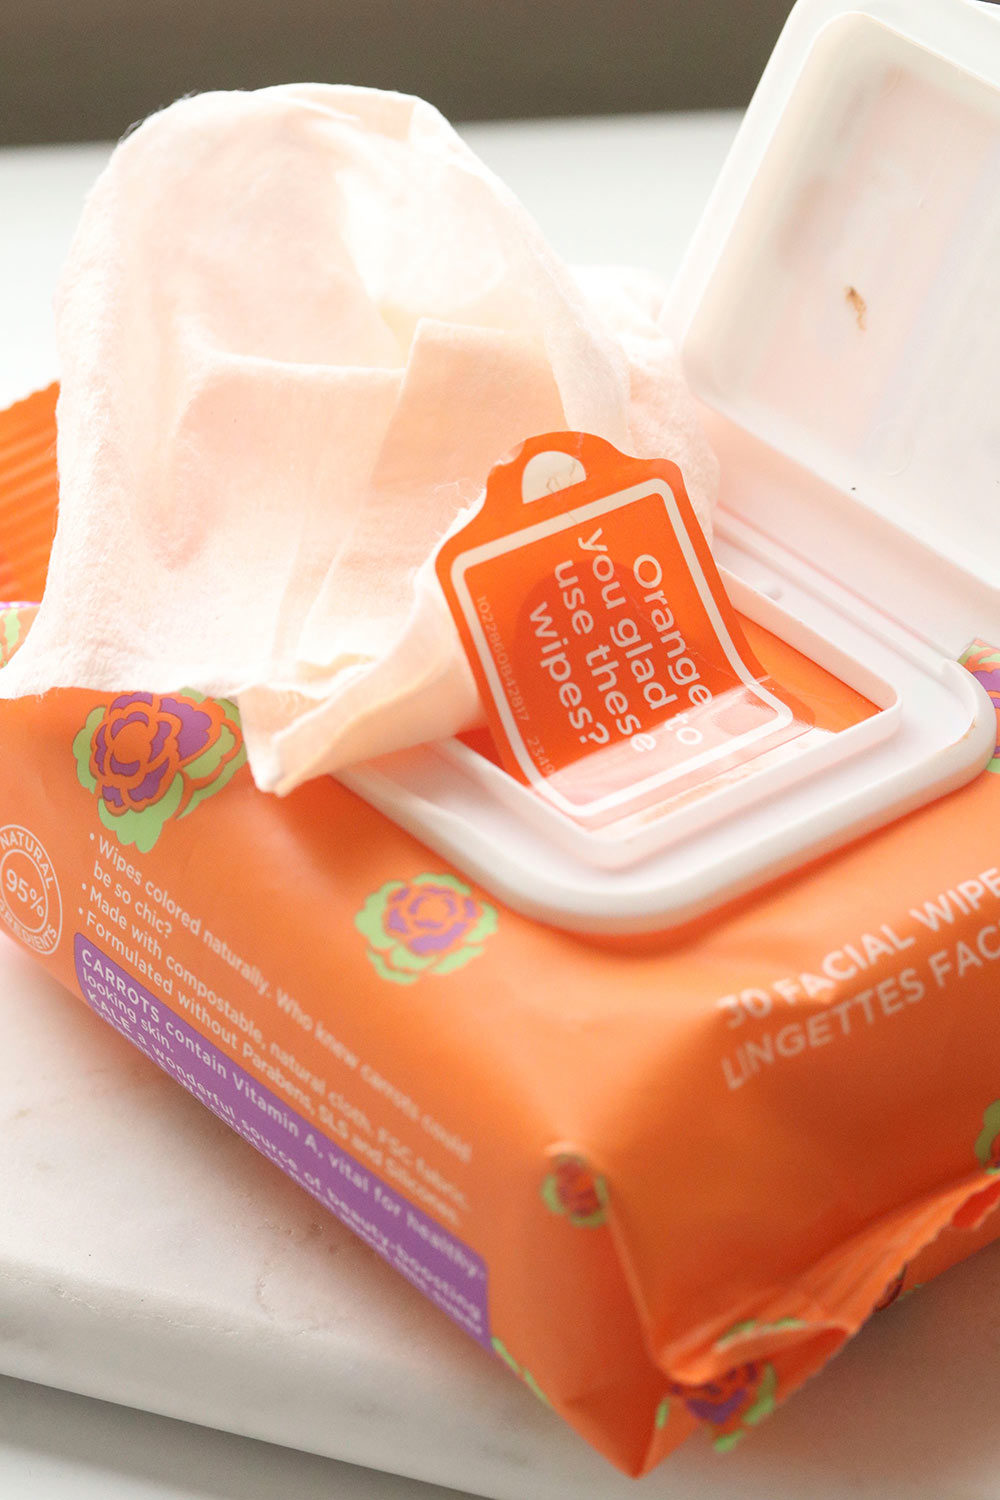 yes to carrots makeup wipes